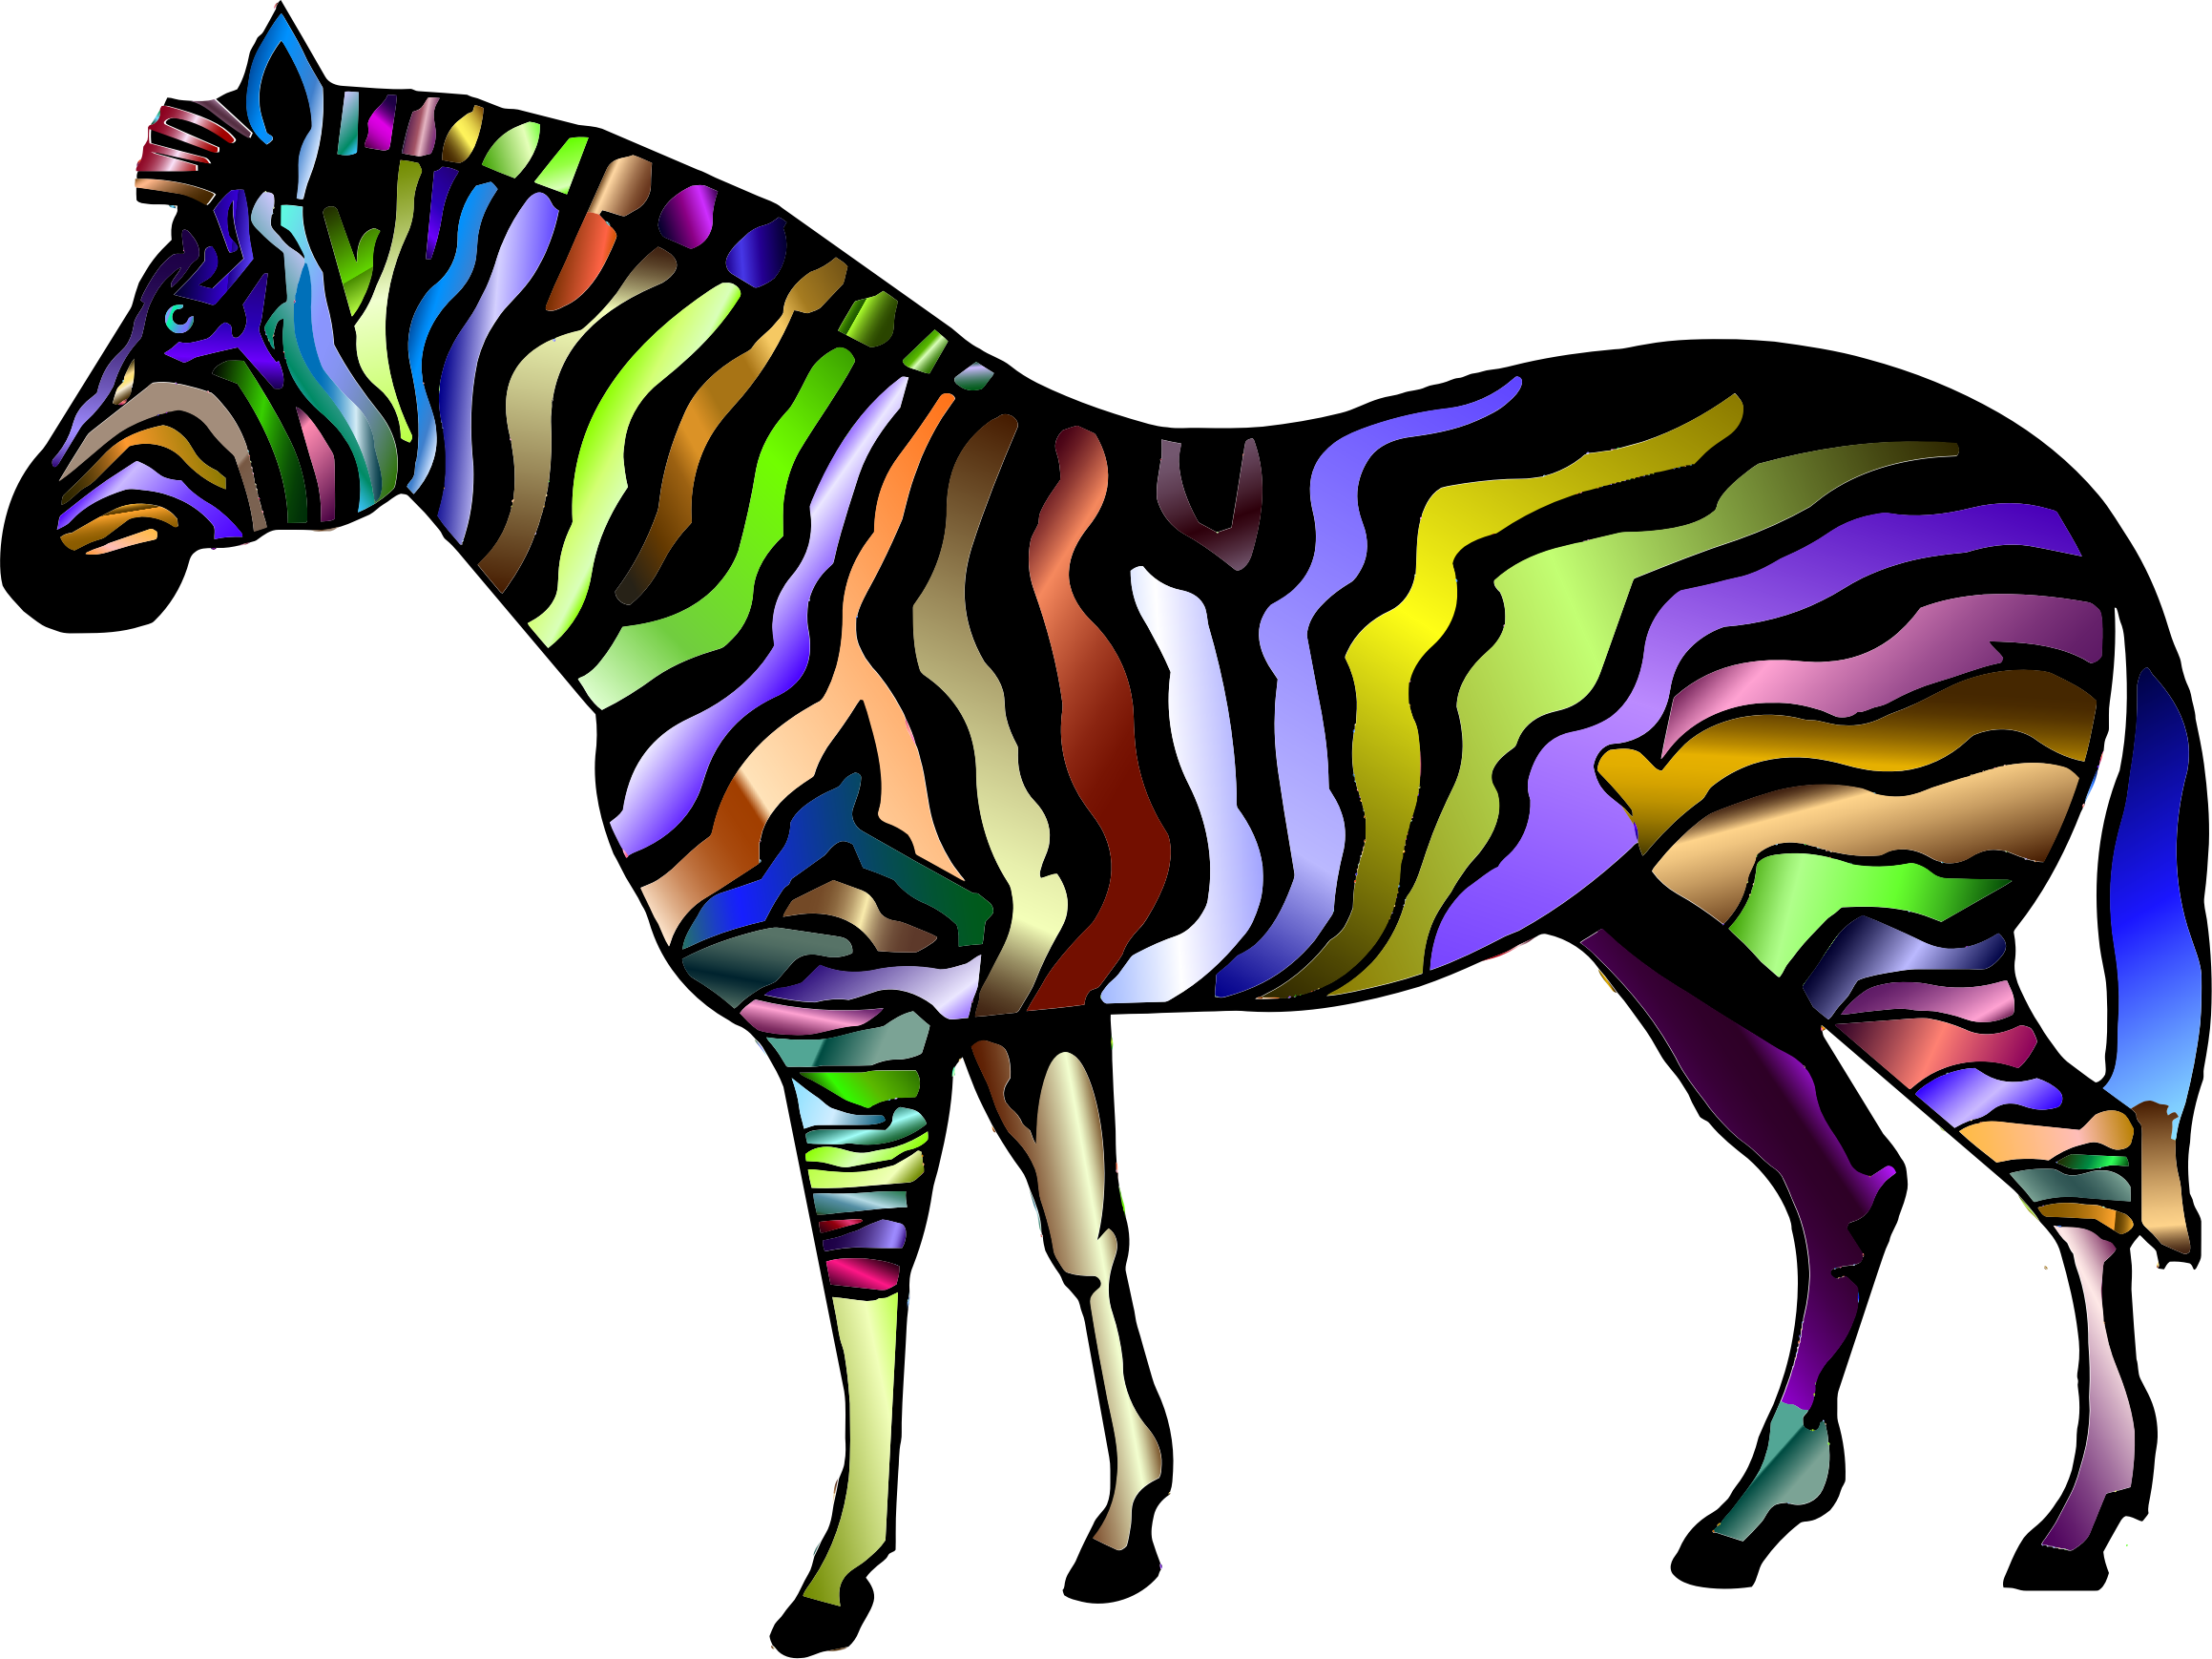 Prismatic Zebra 2 by GDJ